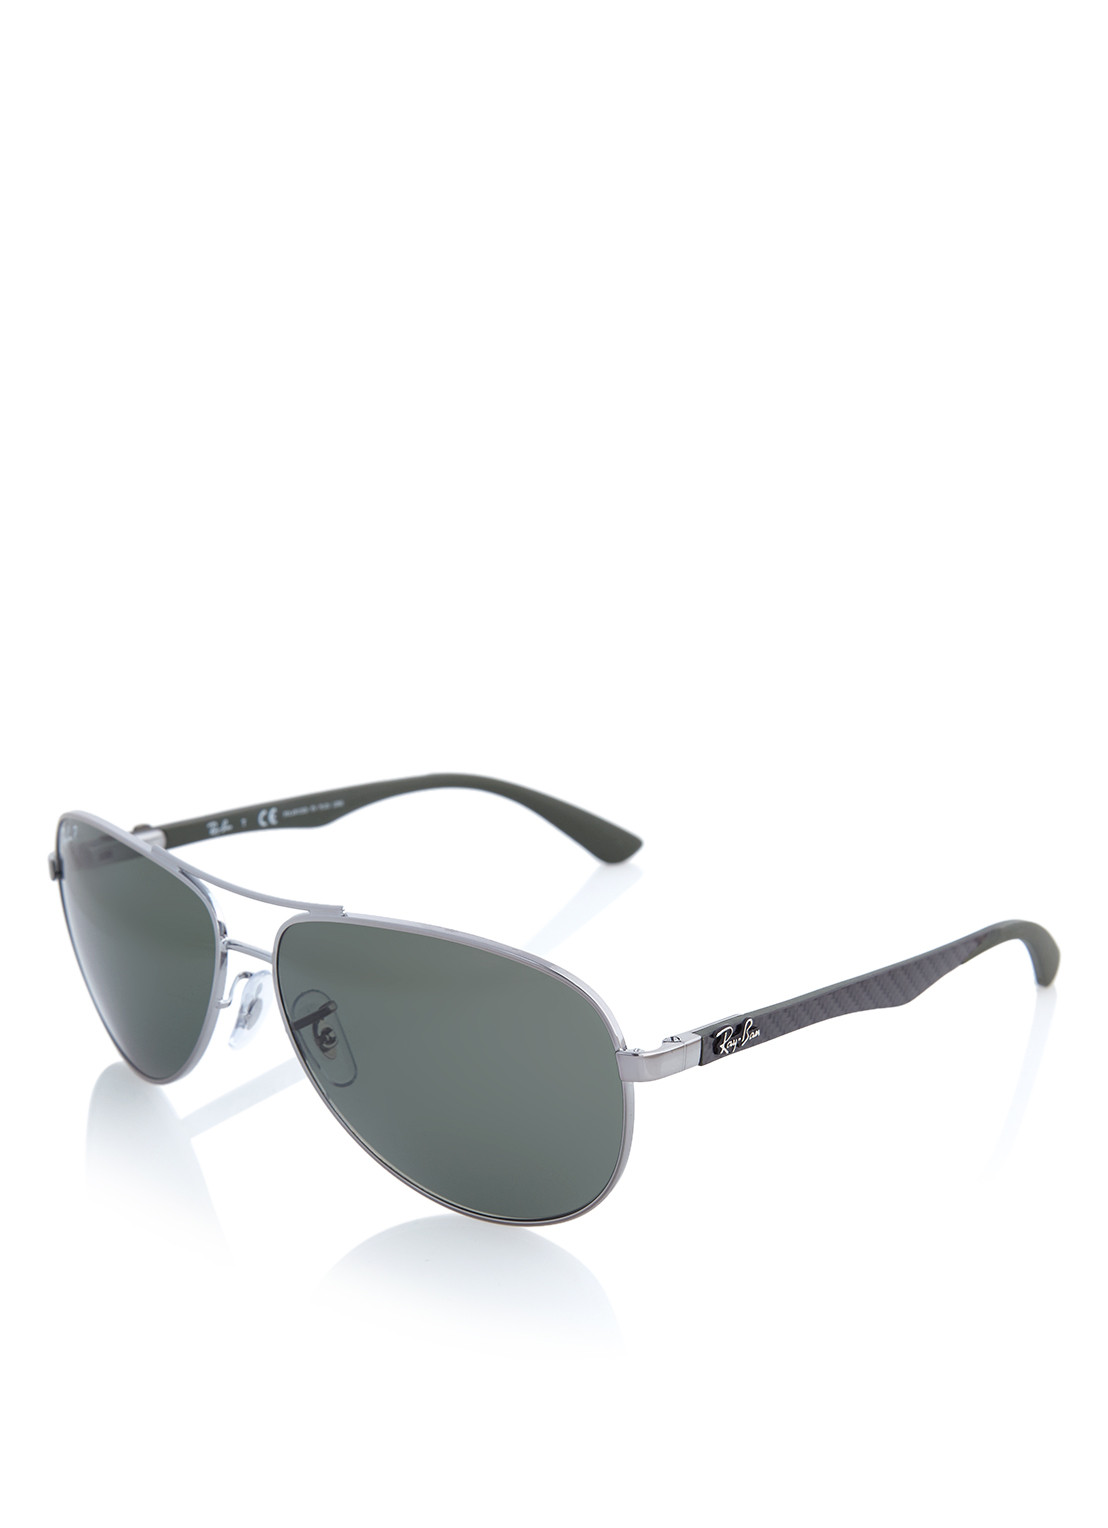 Ray Ban Zonnebril RB8313